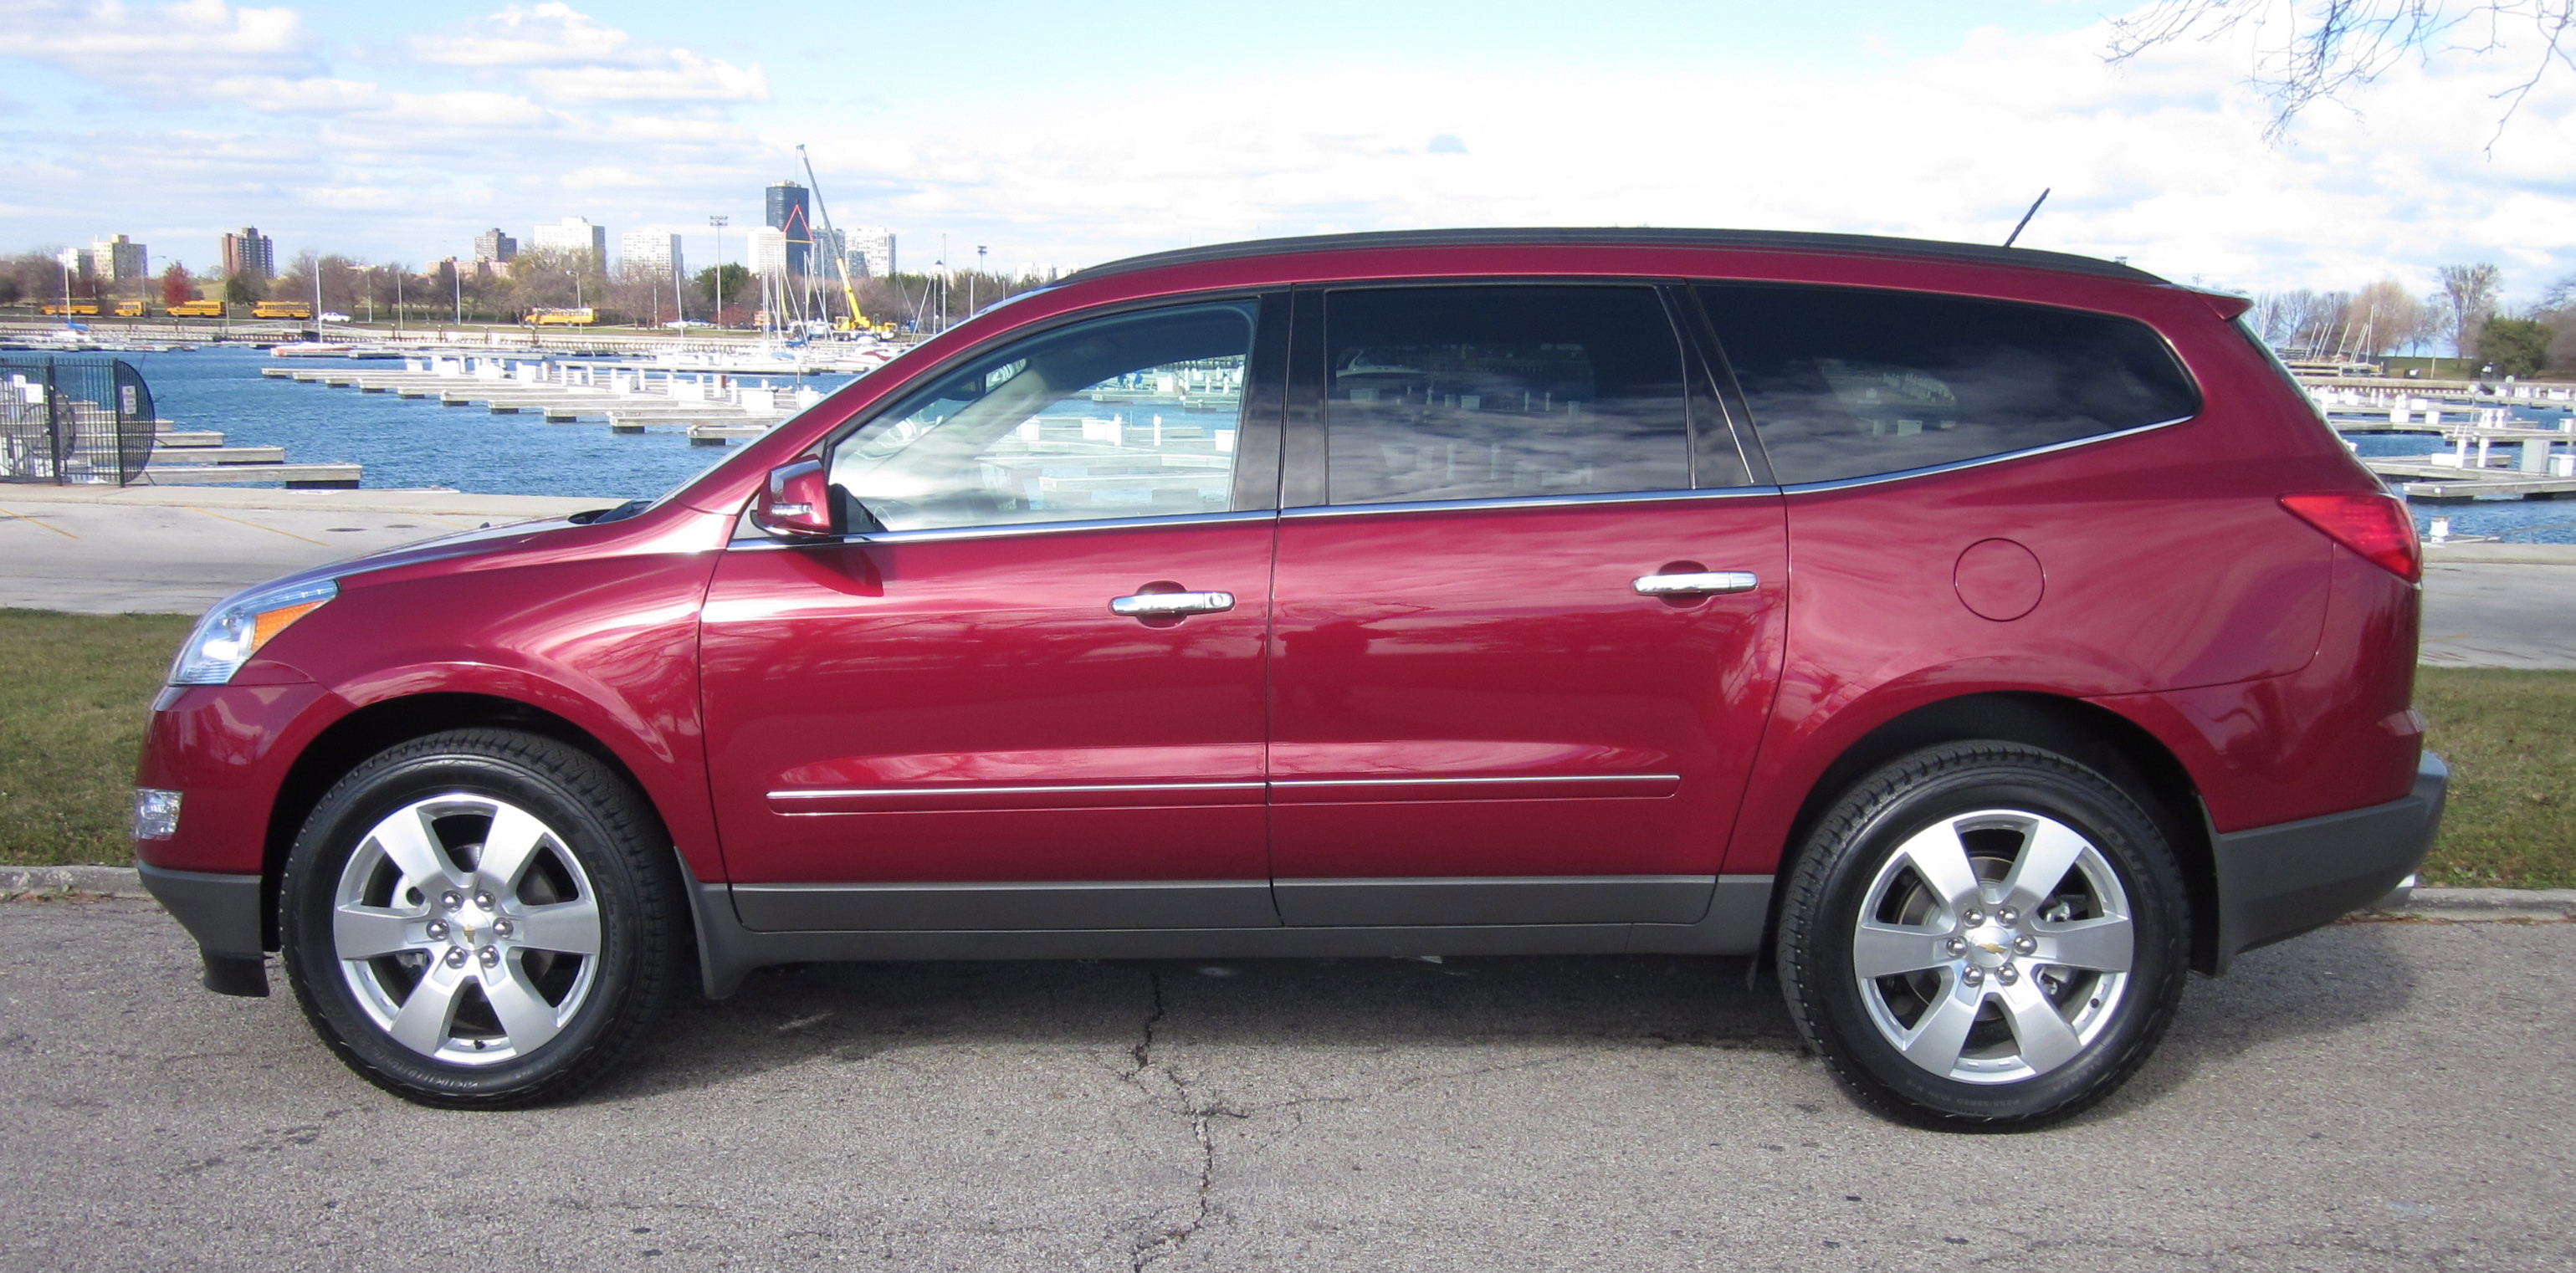 2011 Chevrolet Traverse Review